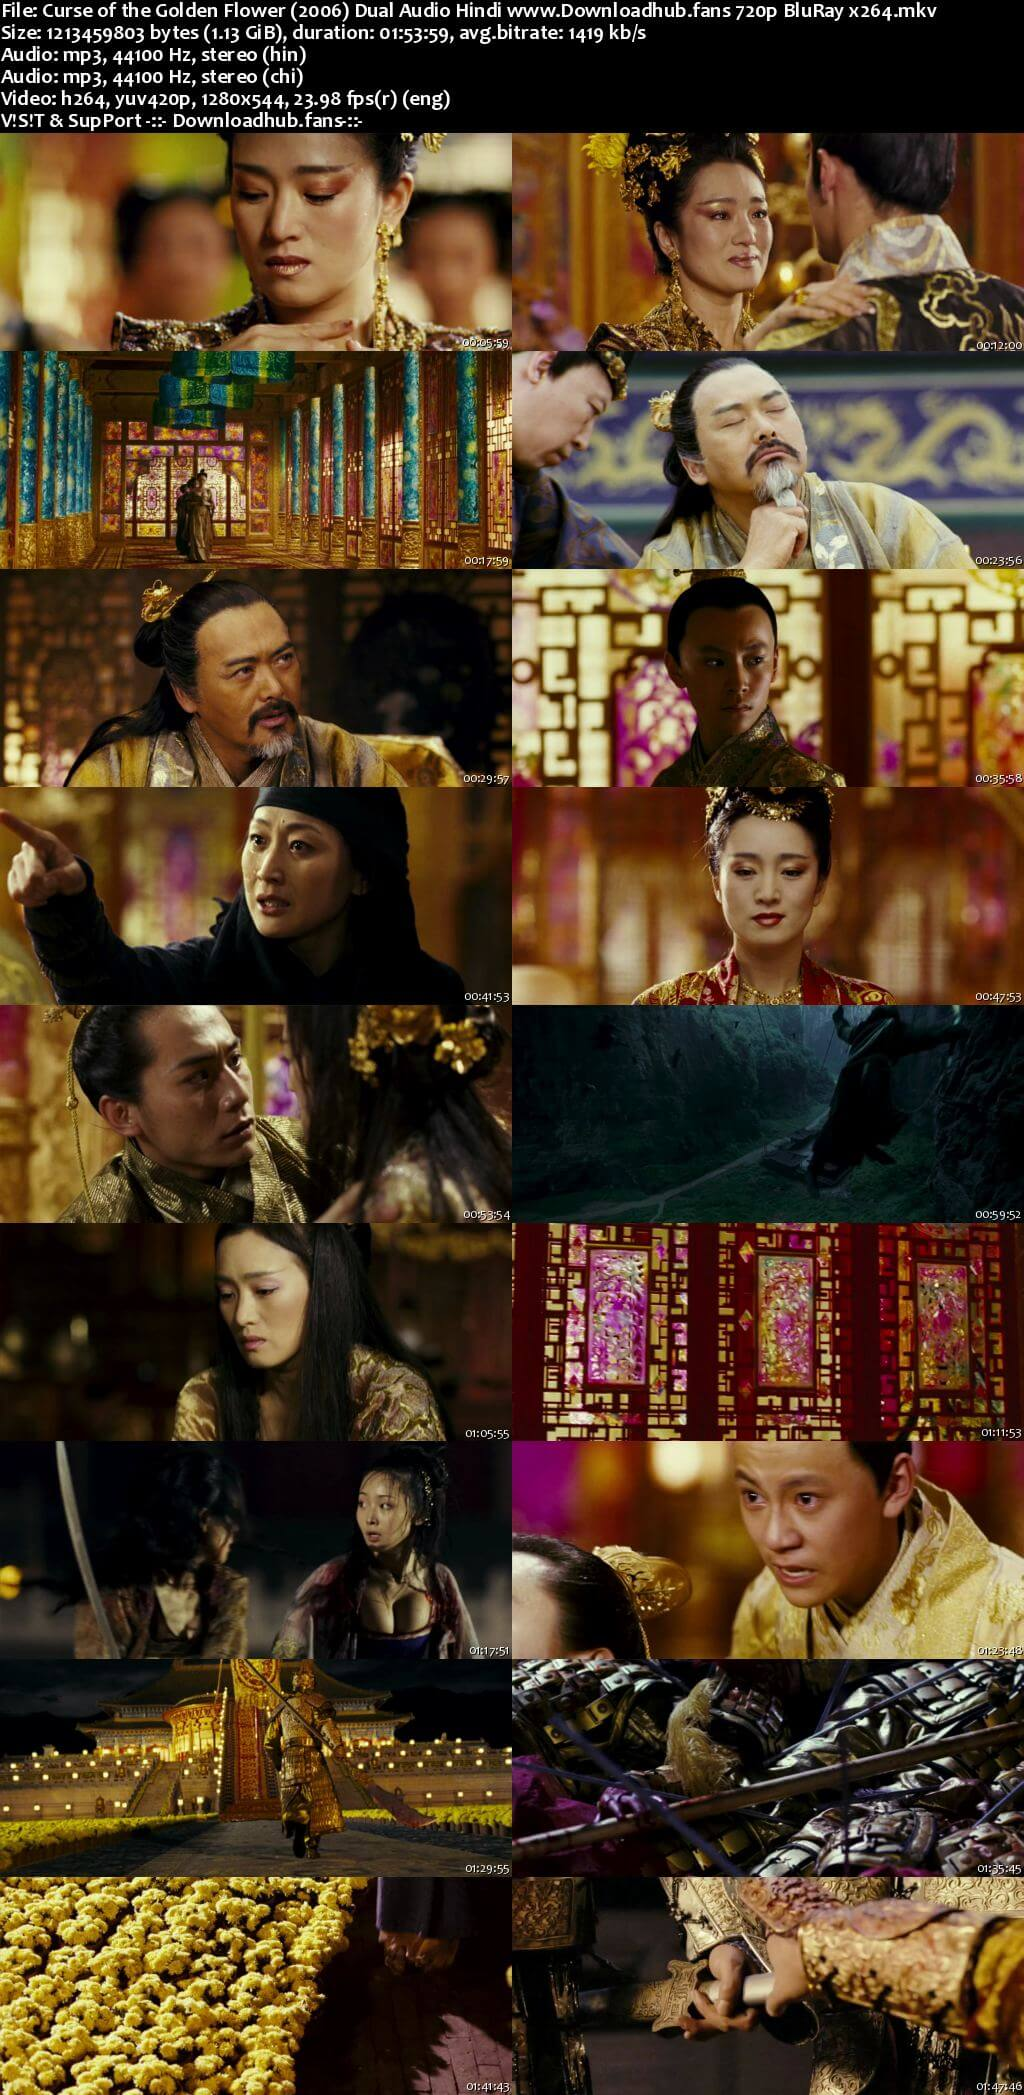 Curse of the Golden Flower 2006 Hindi Dual Audio 720p BluRay x264